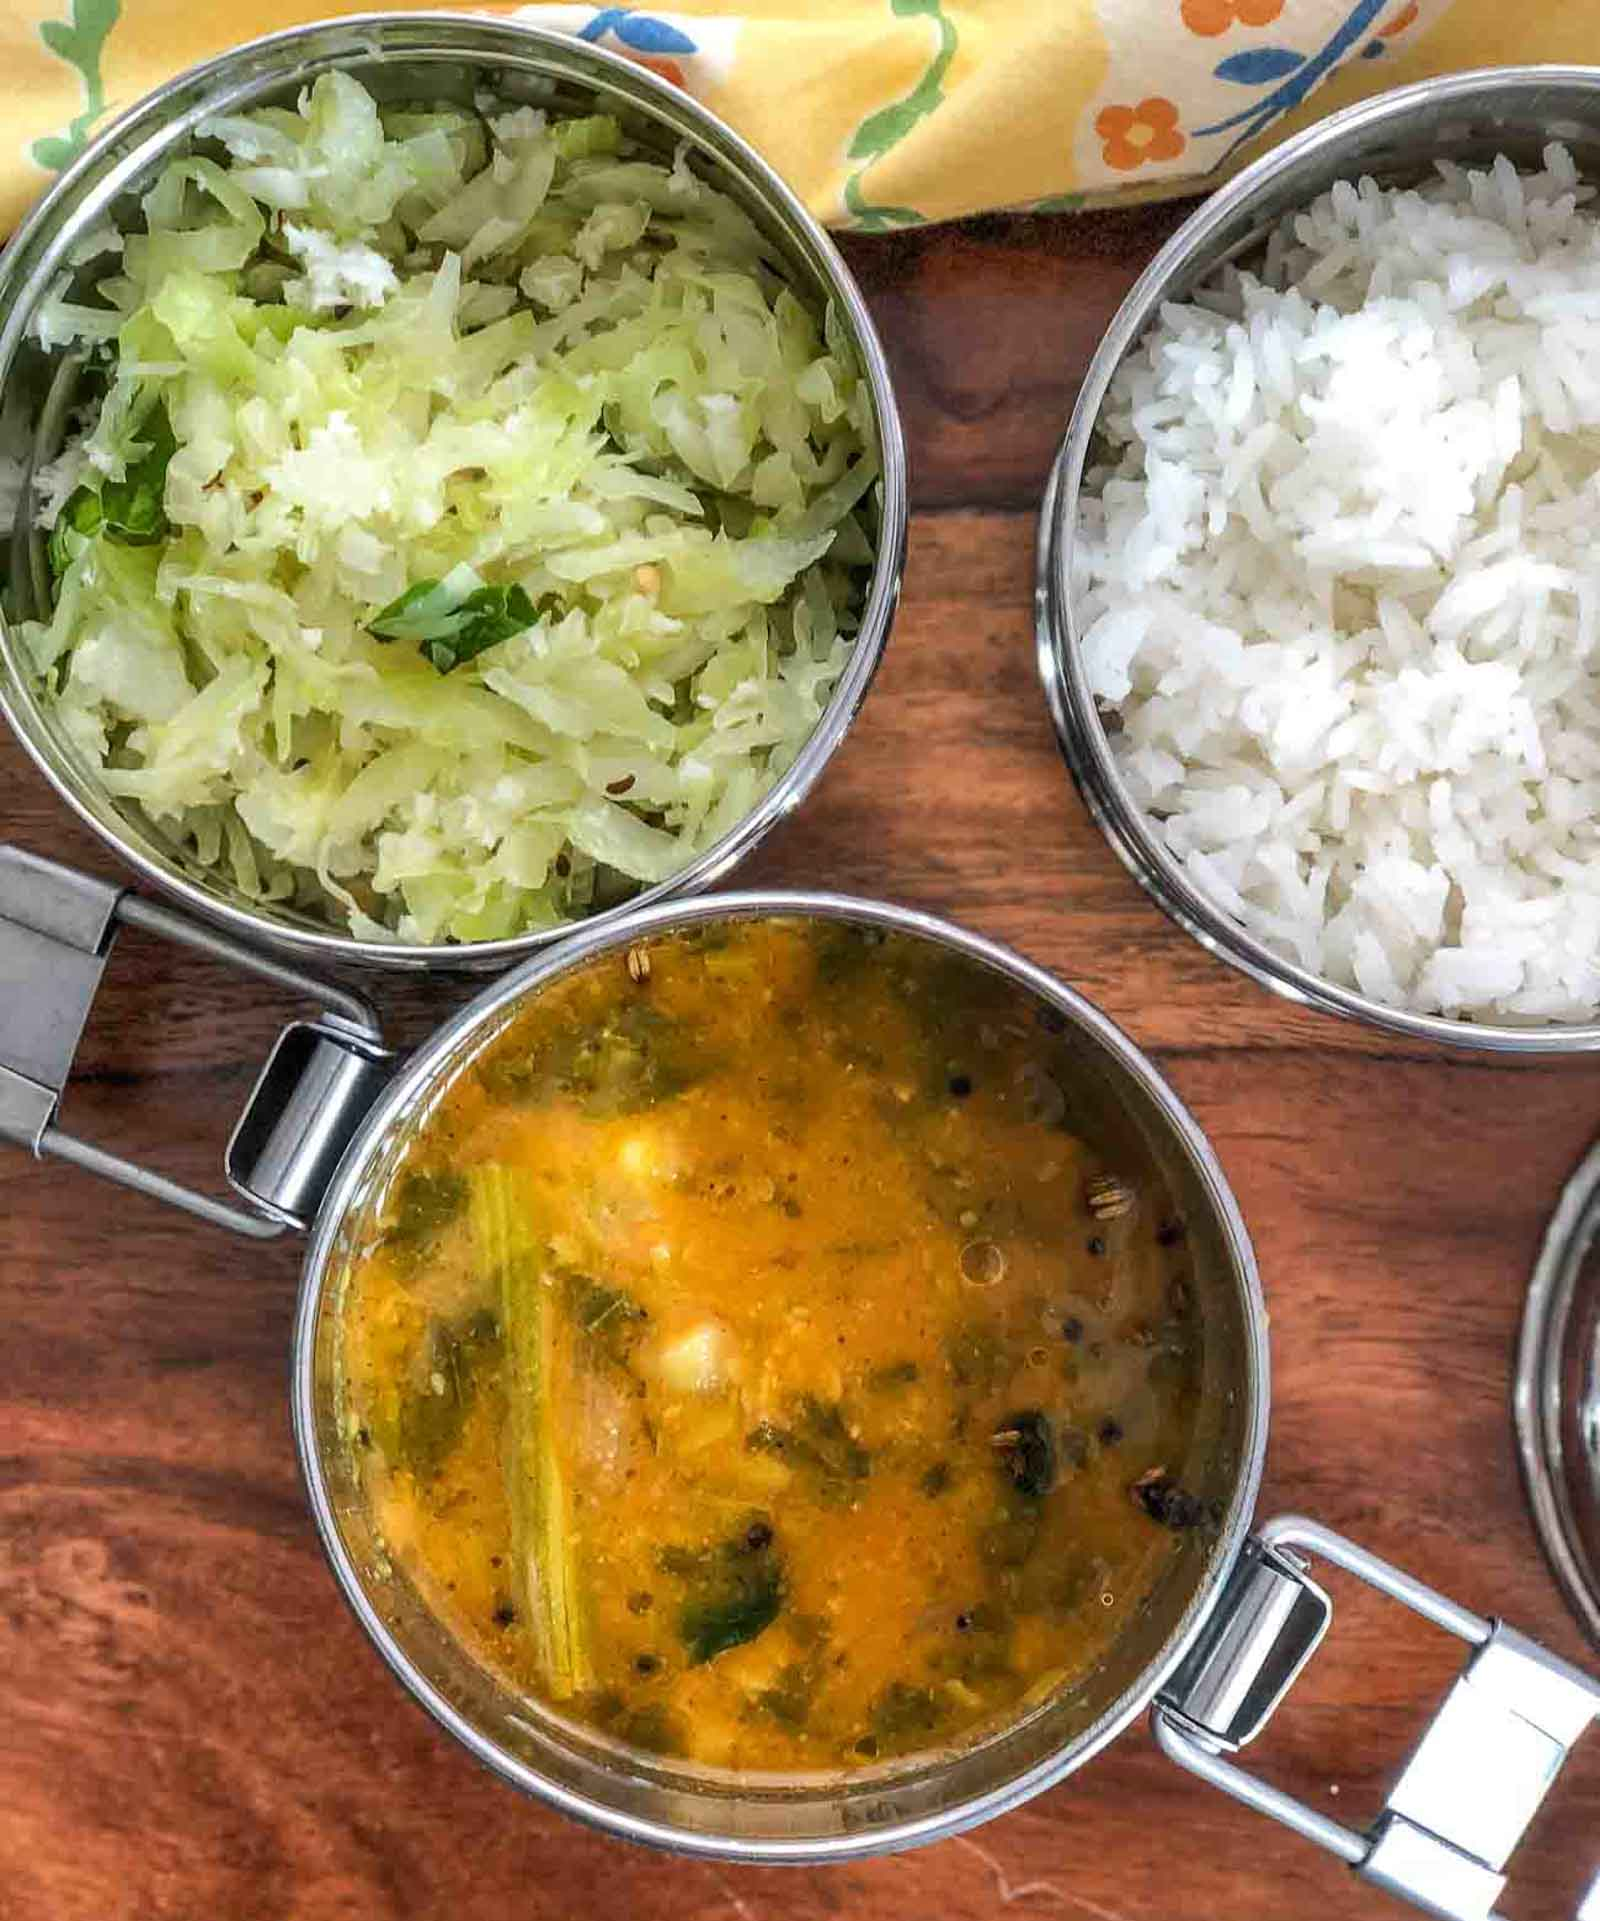 lunch box ideas: murungakkai vendhaya keerai sambar, cabbage poriyal